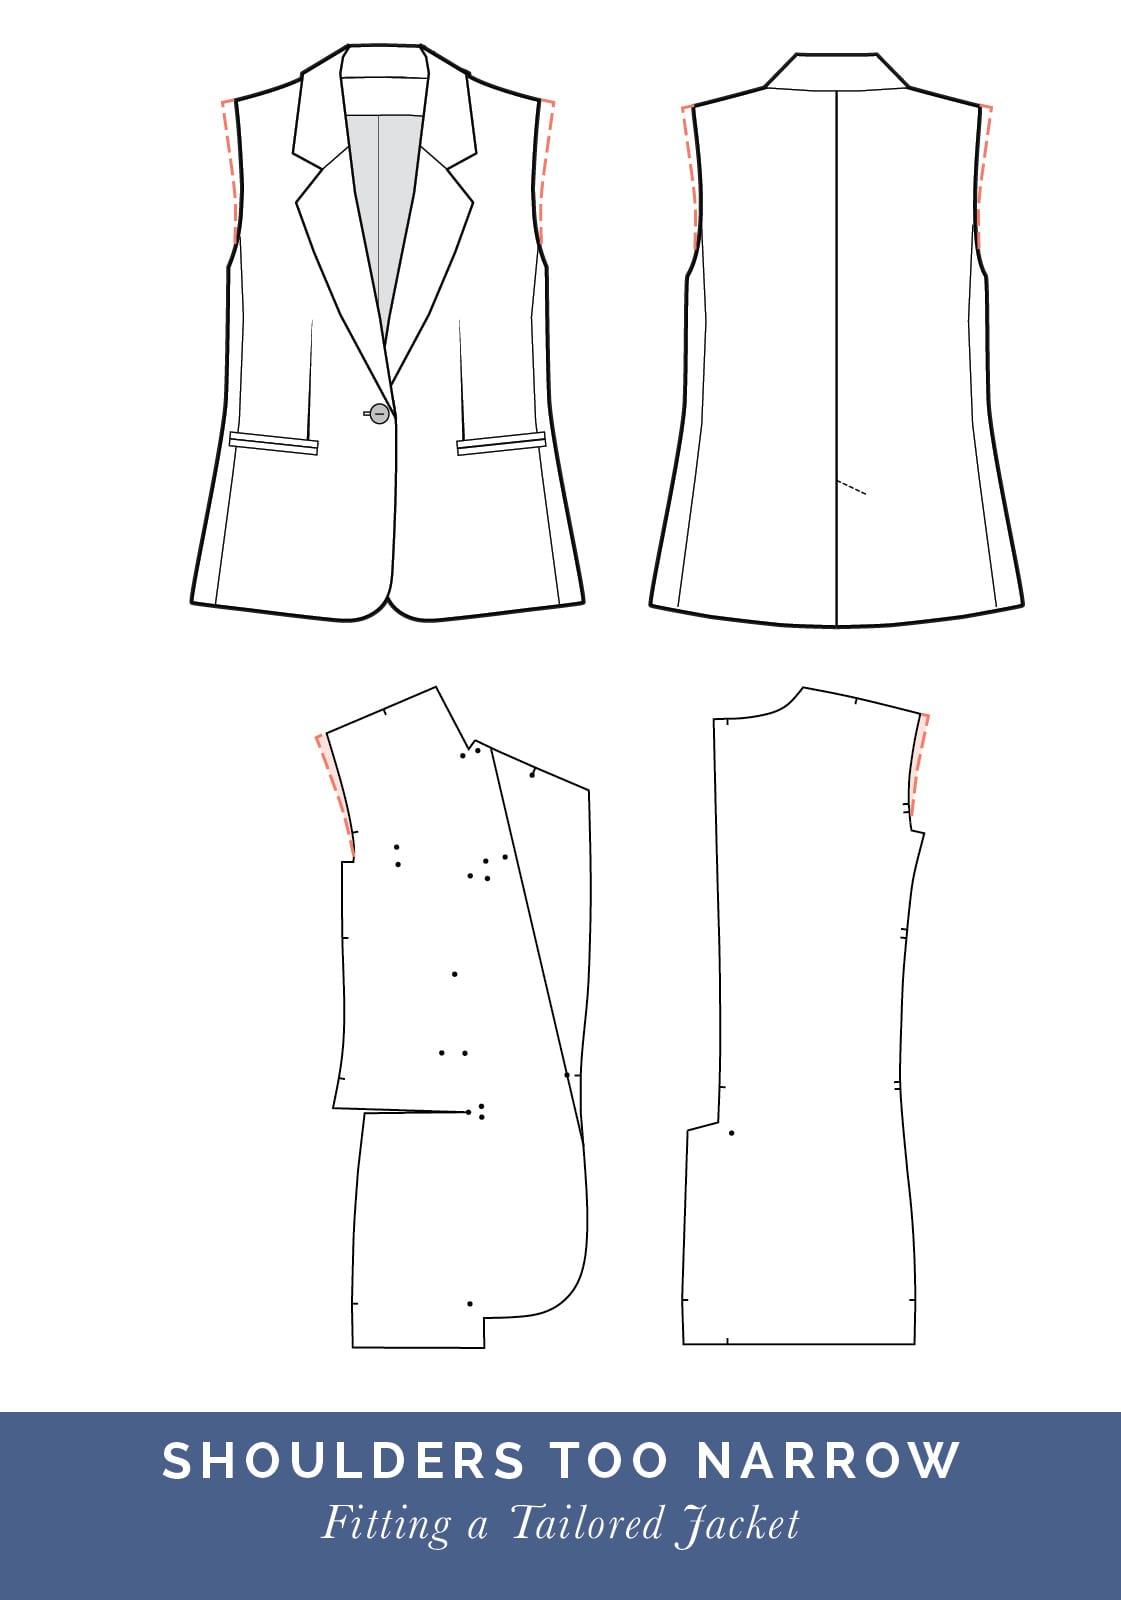 Shoulders too narrow // How to fit a Tailored jacket or Blazer // Fit adjustment issues and fixes